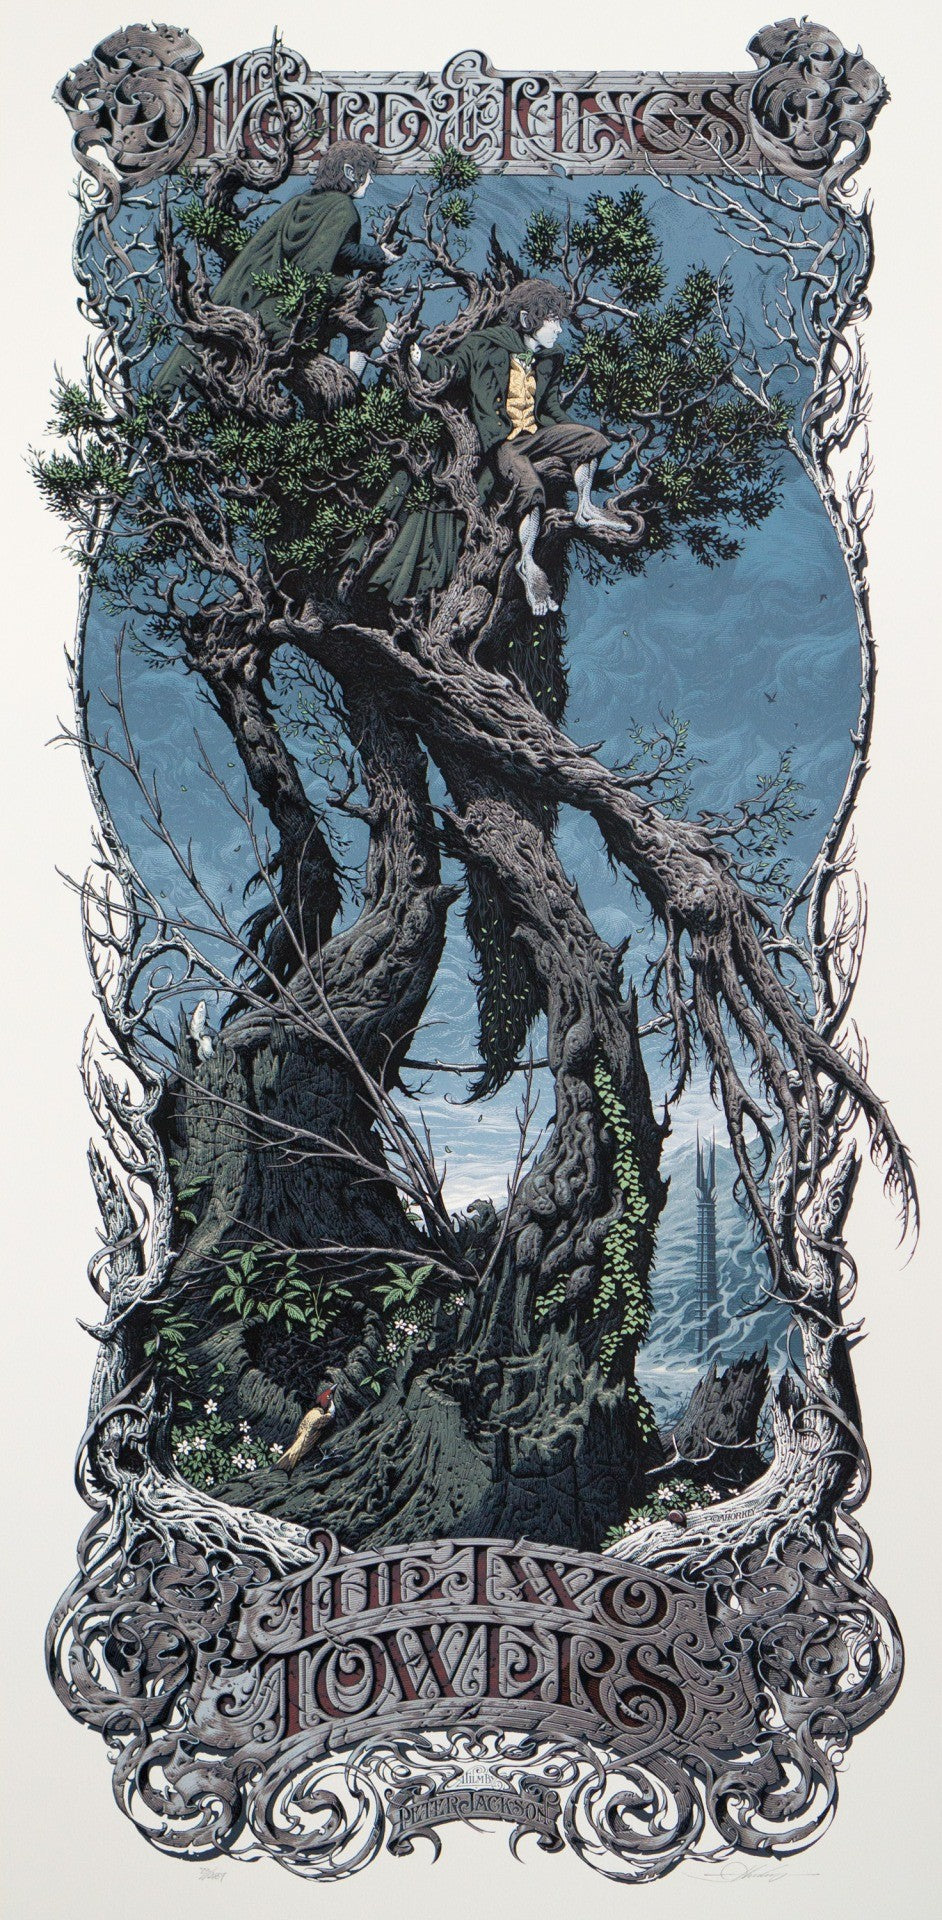 LORD OF THE RINGS: THE TWO TOWERS (regular) by Aaron Horkey